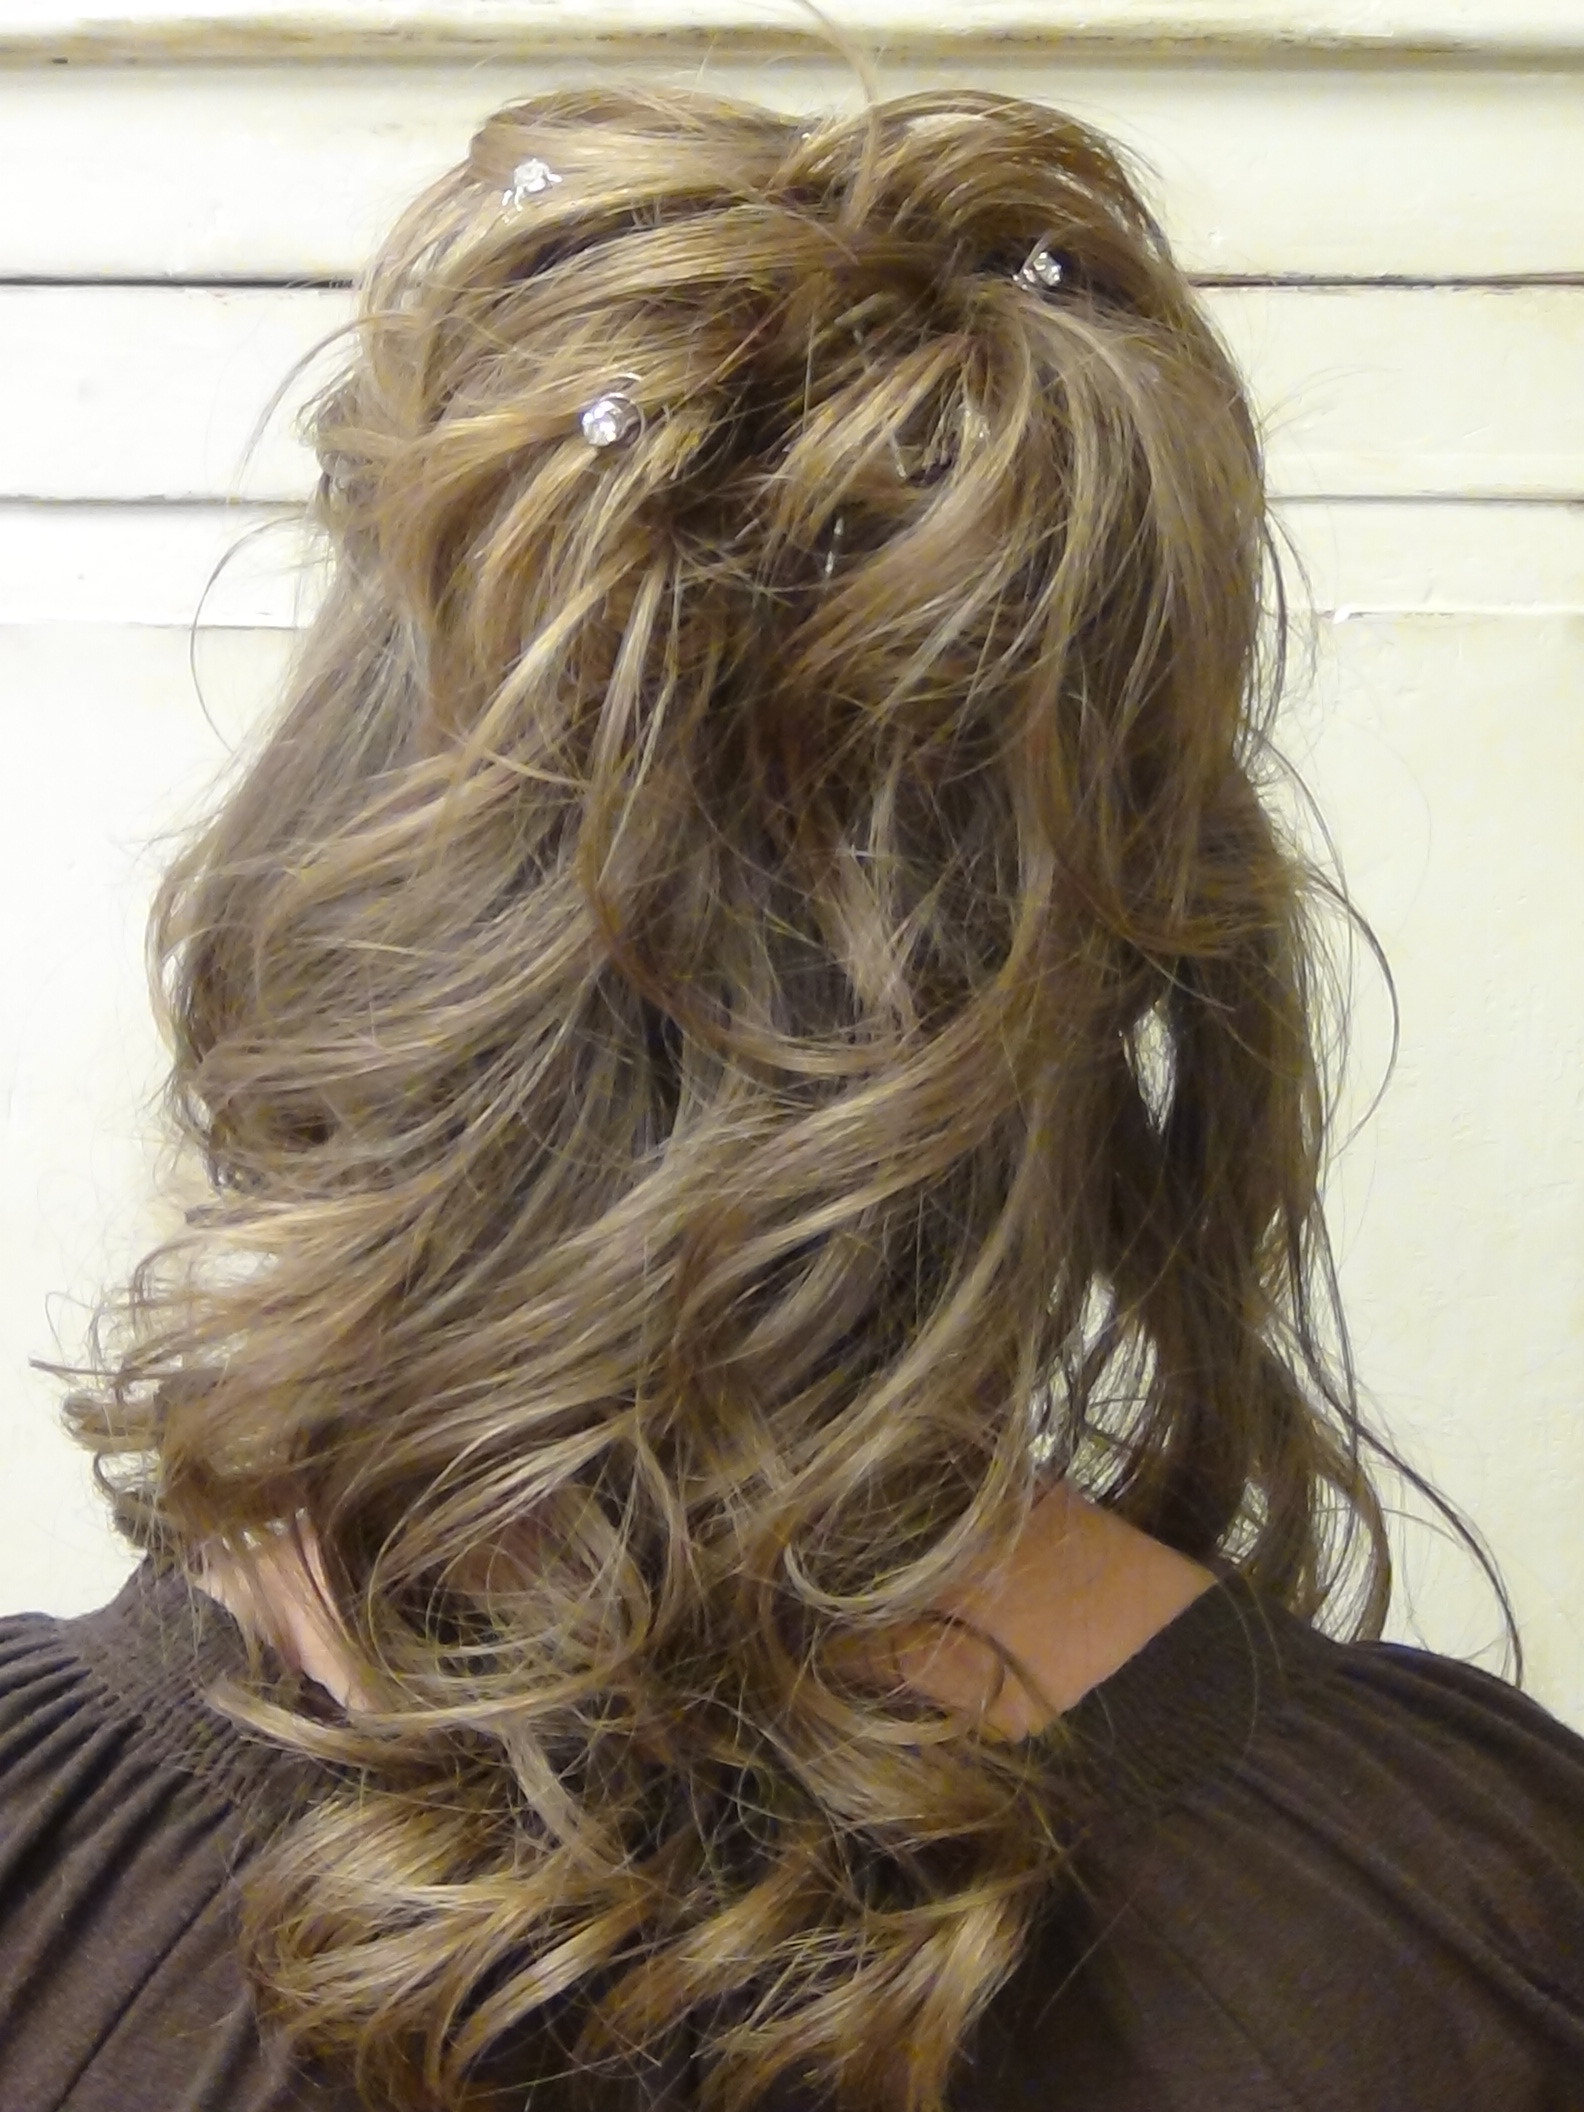 Prime Hairstyles Images From Our Latest Hairstyle Videos Boys And Short Hairstyles Gunalazisus